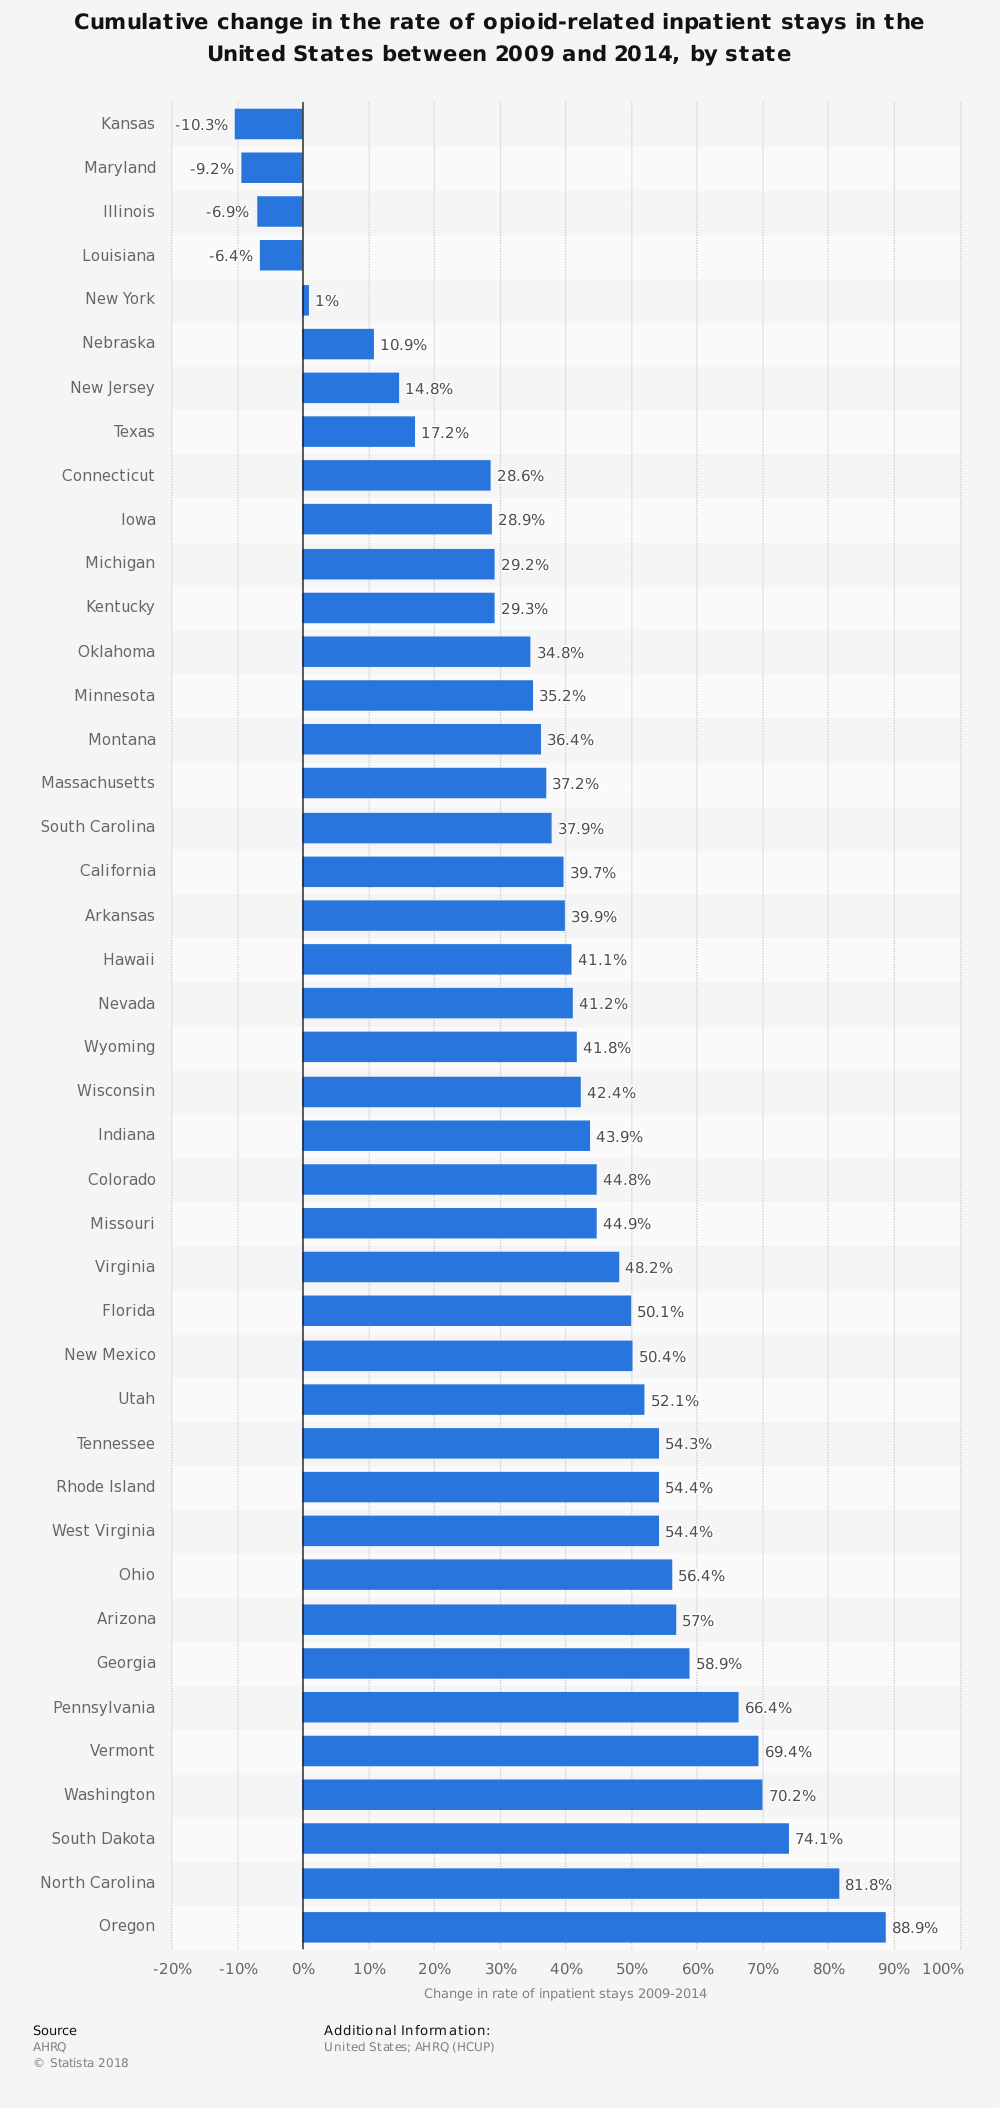 Statistic: Cumulative change in the rate of opioid-related inpatient stays in the United States between 2009 and 2014, by state | Statista